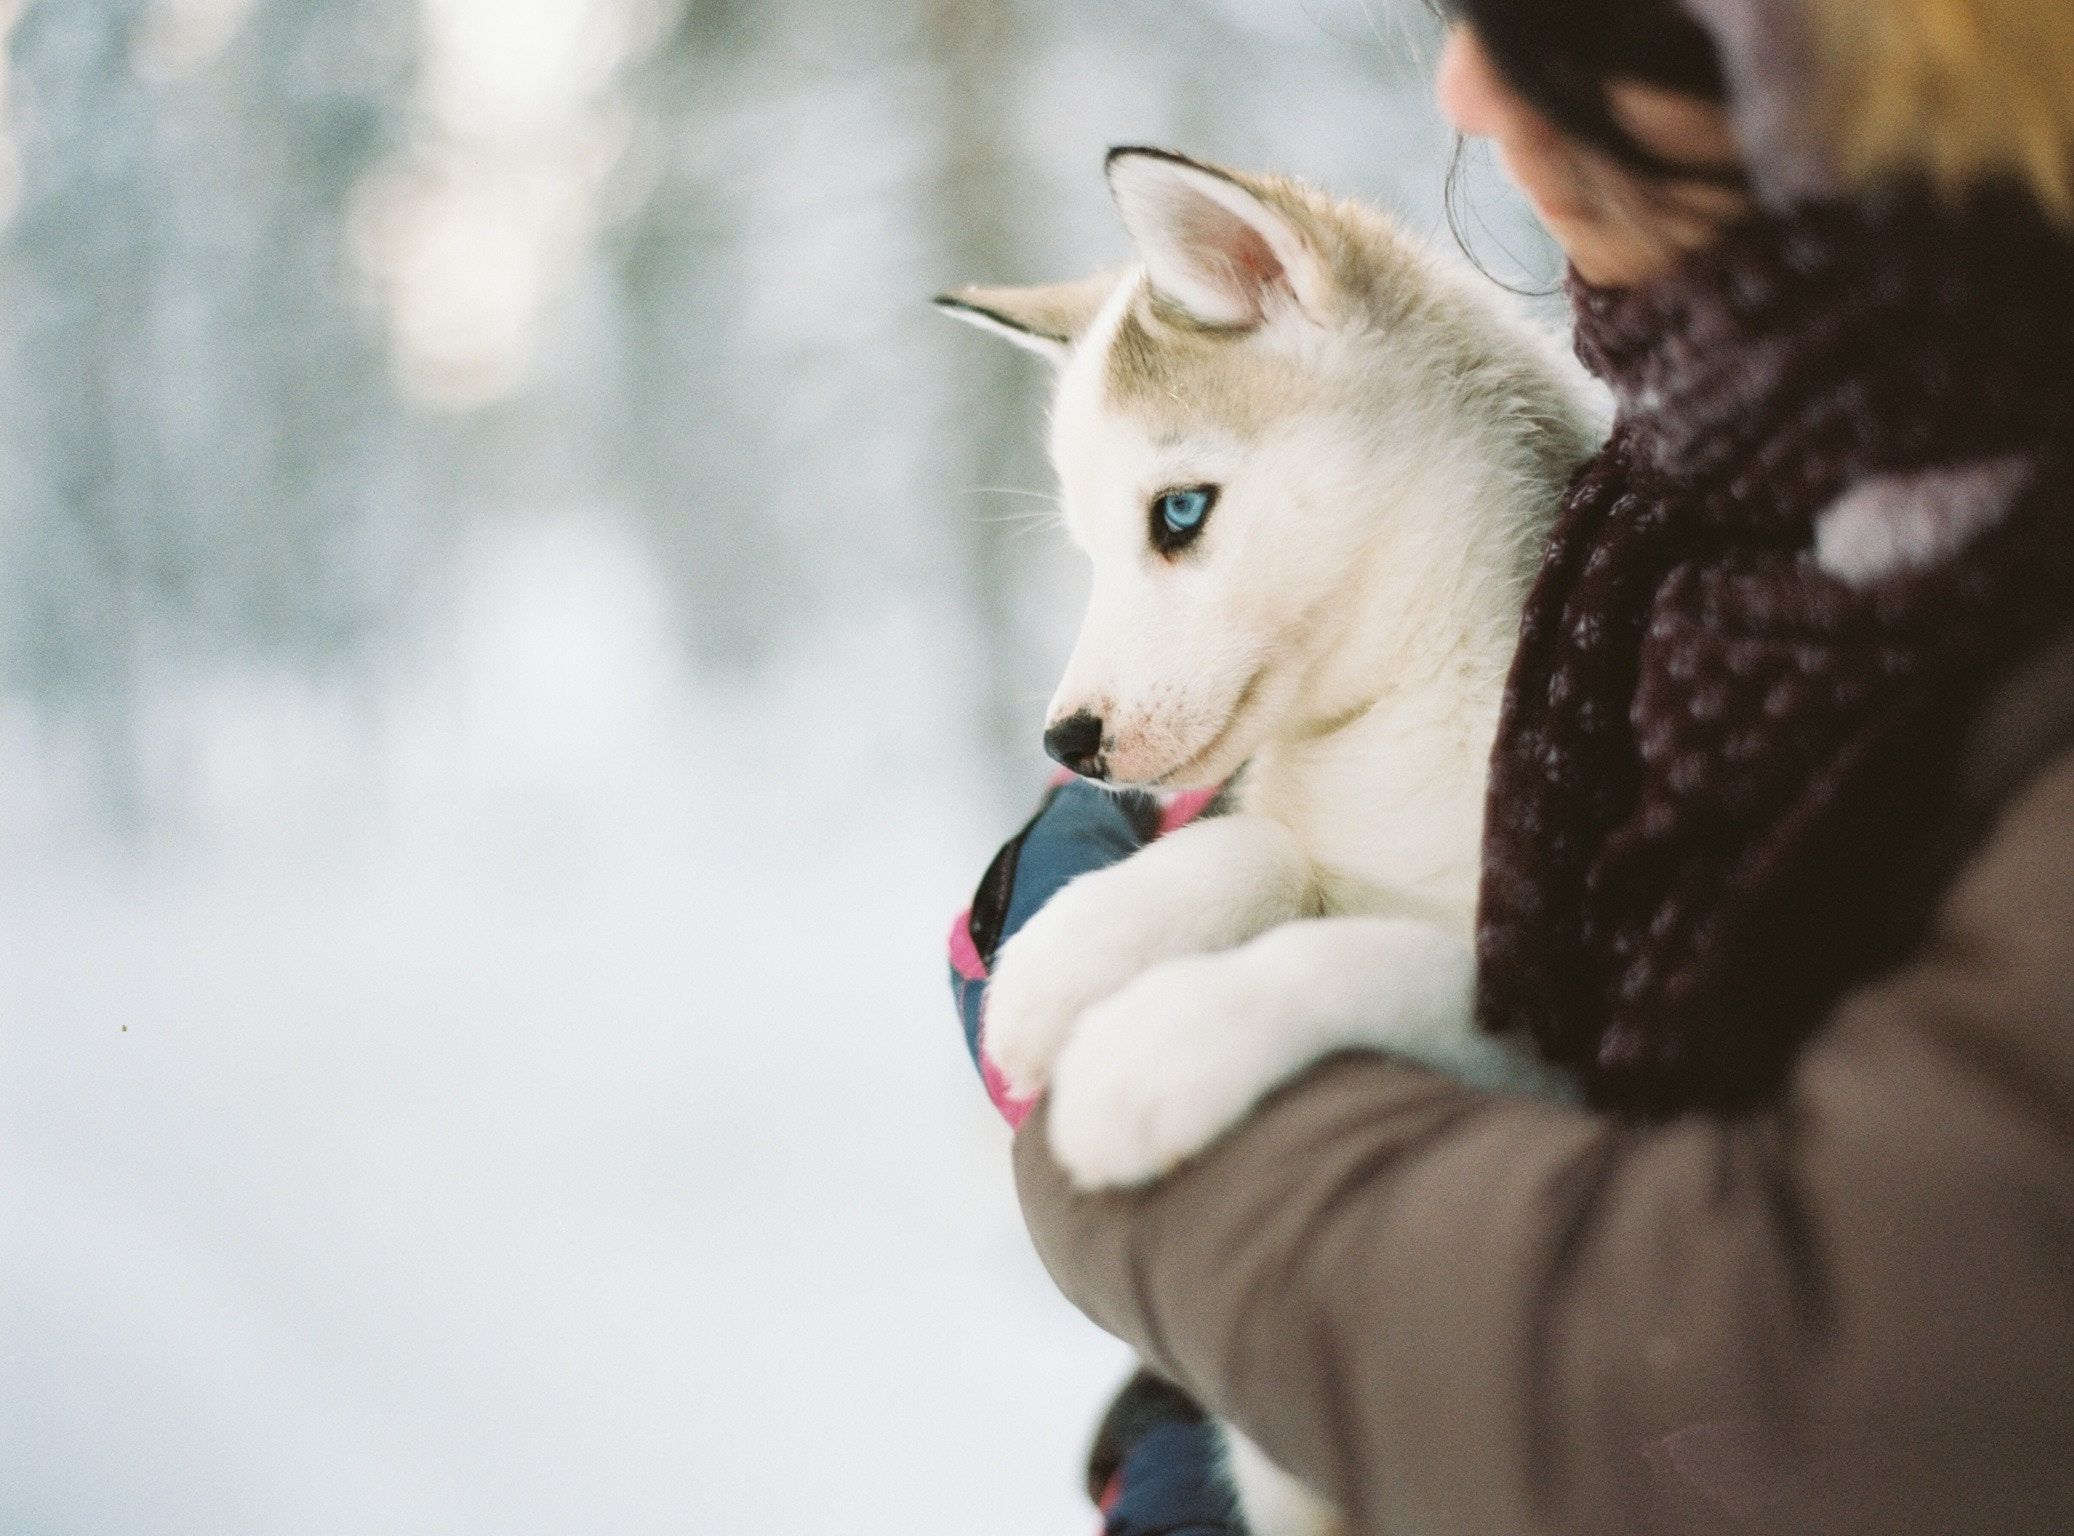 Siberian Huskies Are Super Friendly And A Great Dog To Have In The